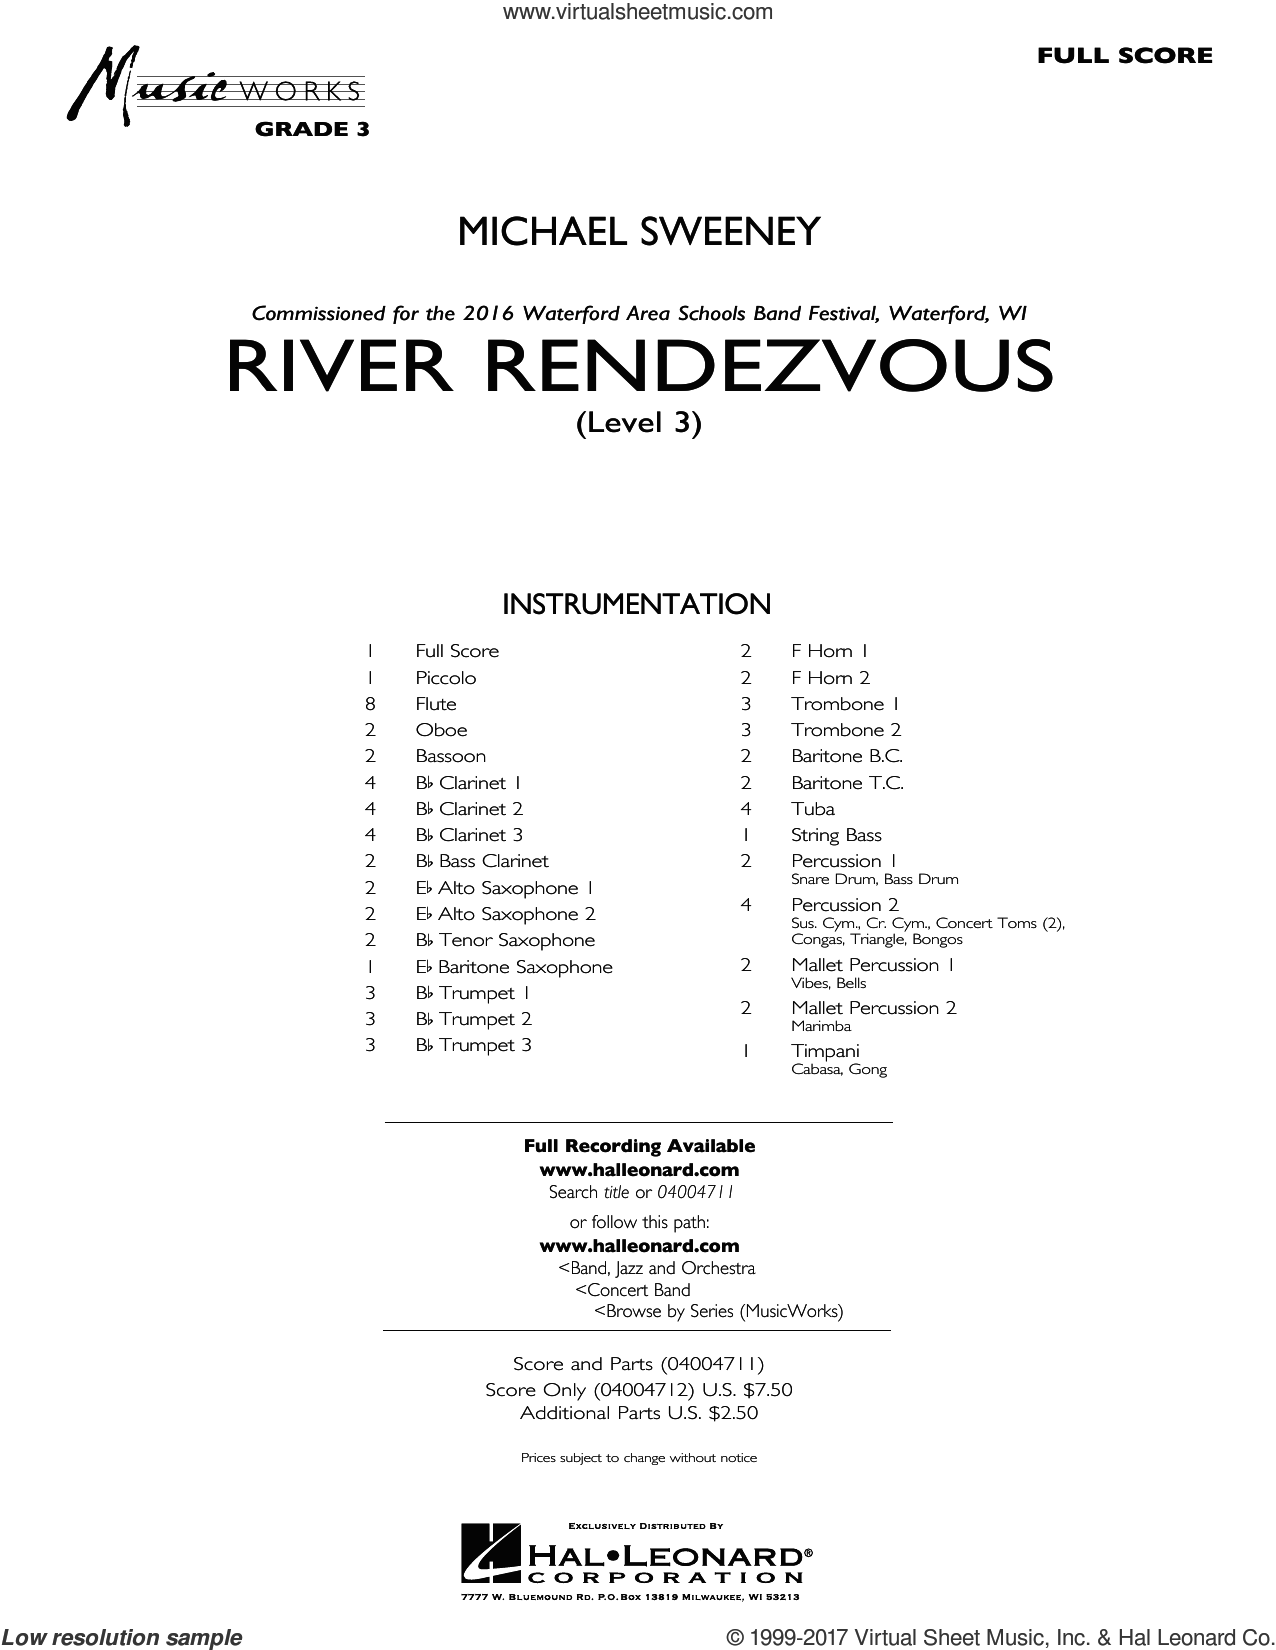 River Rendezvous (COMPLETE) sheet music for concert band by Michael Sweeney, intermediate skill level